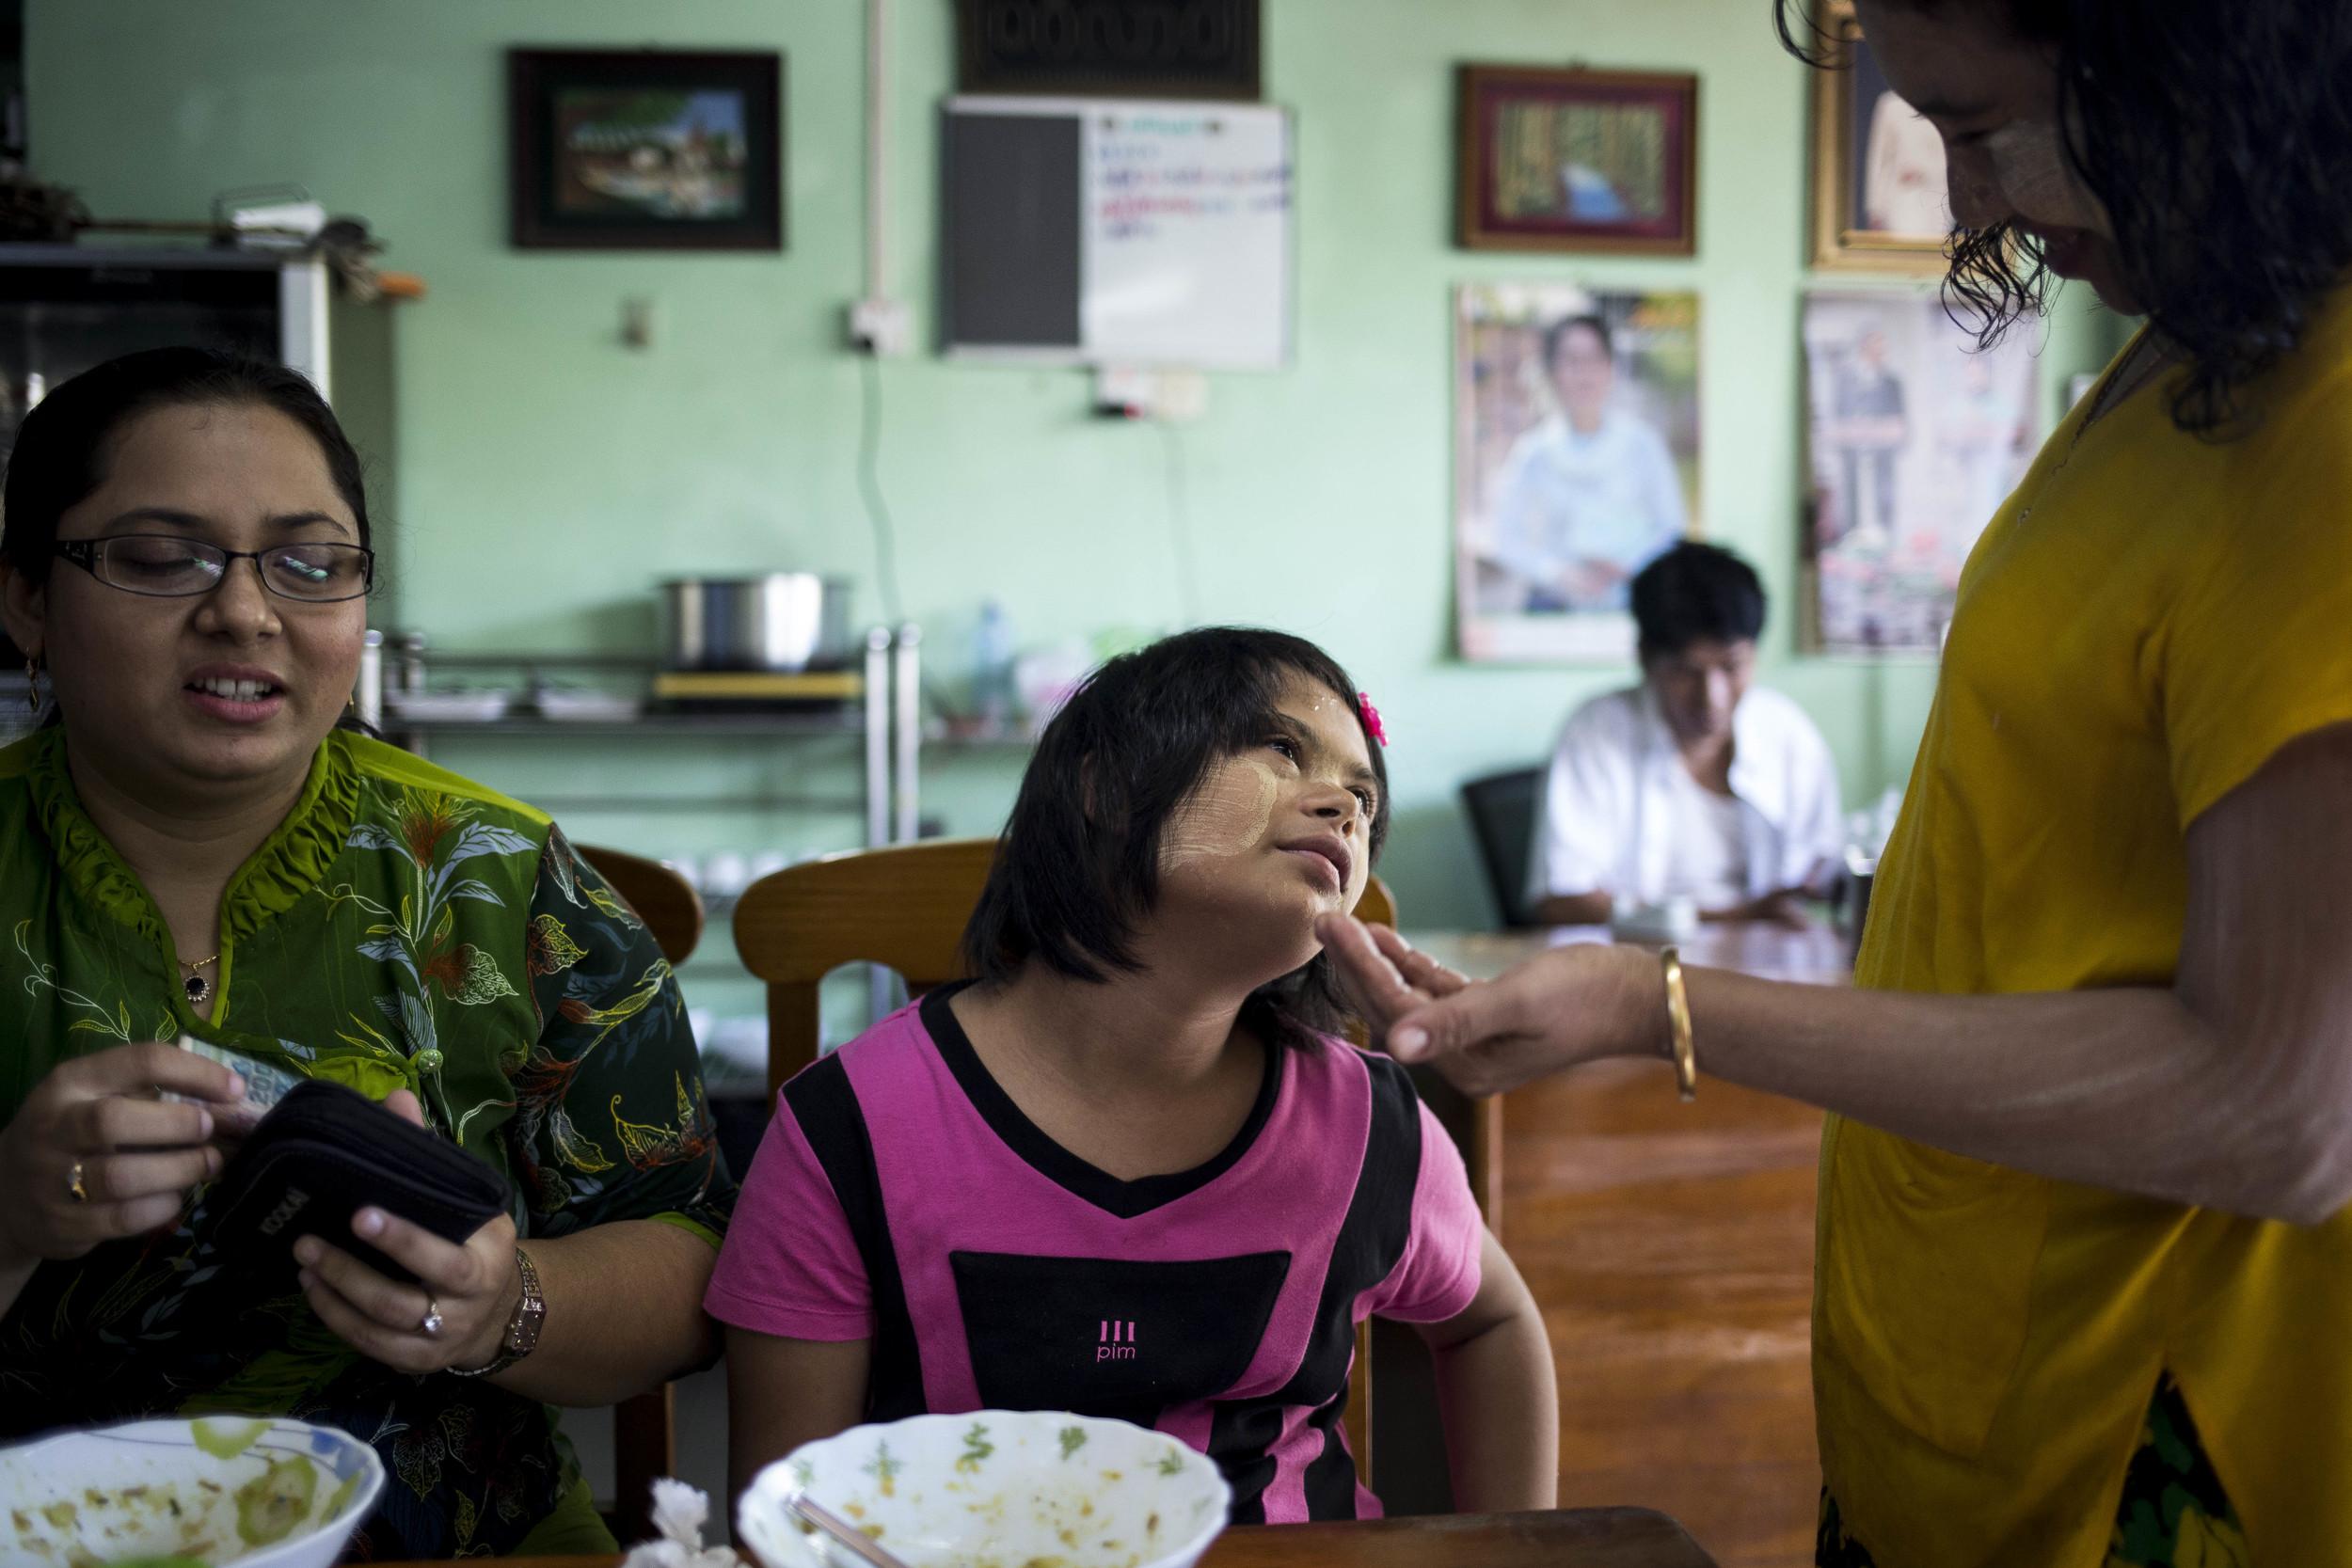 4.Kan Nay Chi Khin interacting with a stuff at a restaurant. People in Myanmar generally have no knowledge about Down syndrome, but because the family comes to this restaurant very often. The stuff is really familiar with Nay Chi. Photo by Ann WangBy following a couple of families with Down Syndrome children or adults, this project aim to show the limited resources these families have, which includes the county does not have facilities training special needs teacher,  and discrimination against disable people, causing people with Down Syndrome in Myanmar rarely receives education. Yet, the families of the Down Syndrome children determent to make a change, with or without the help from the government.